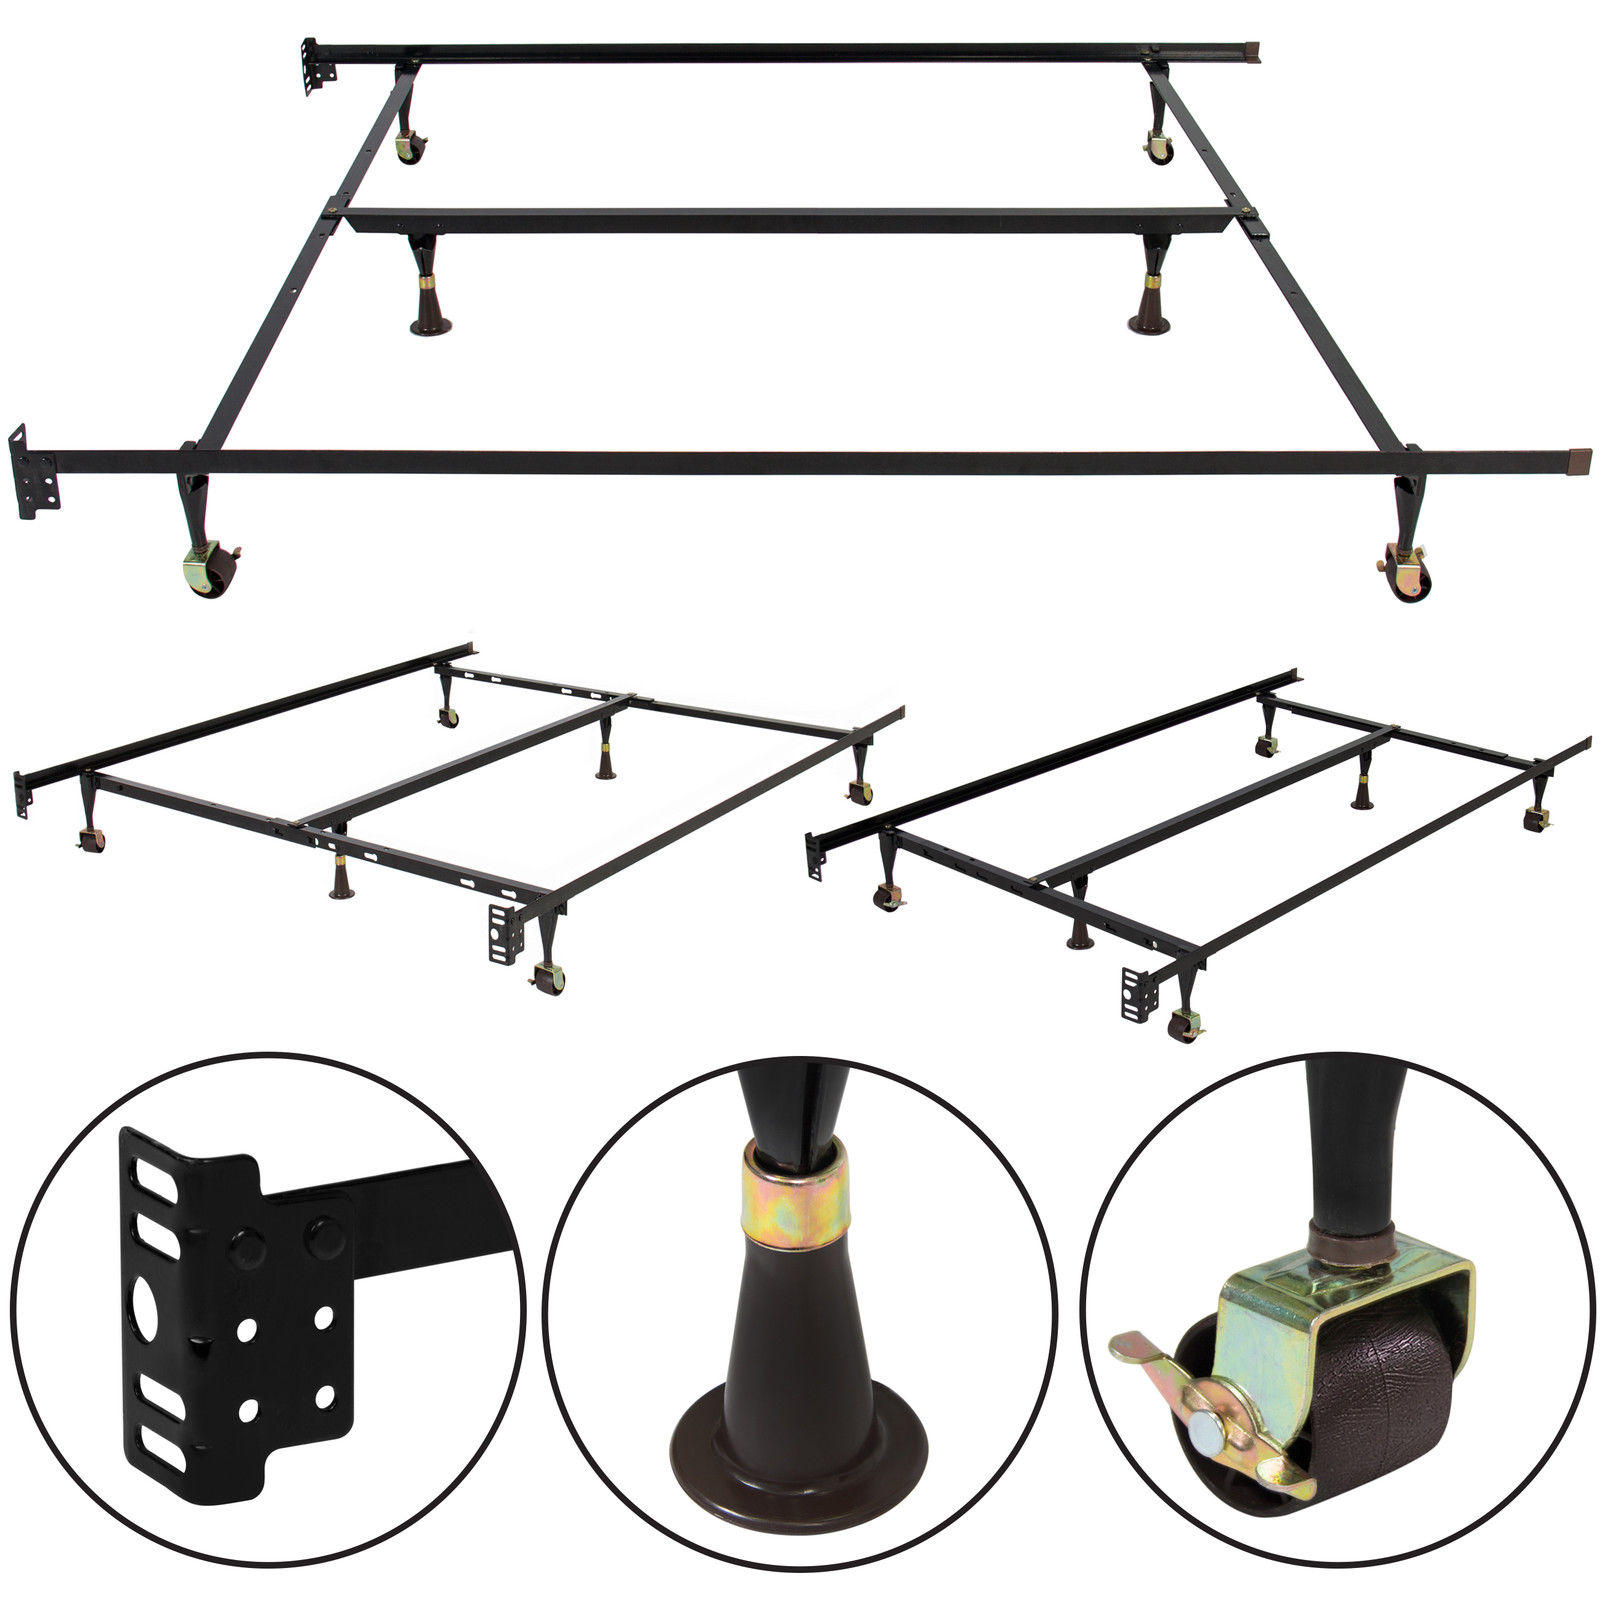 Metal Bed Frame Adjustable Queen Full Twin Size W/ Center Support Platform